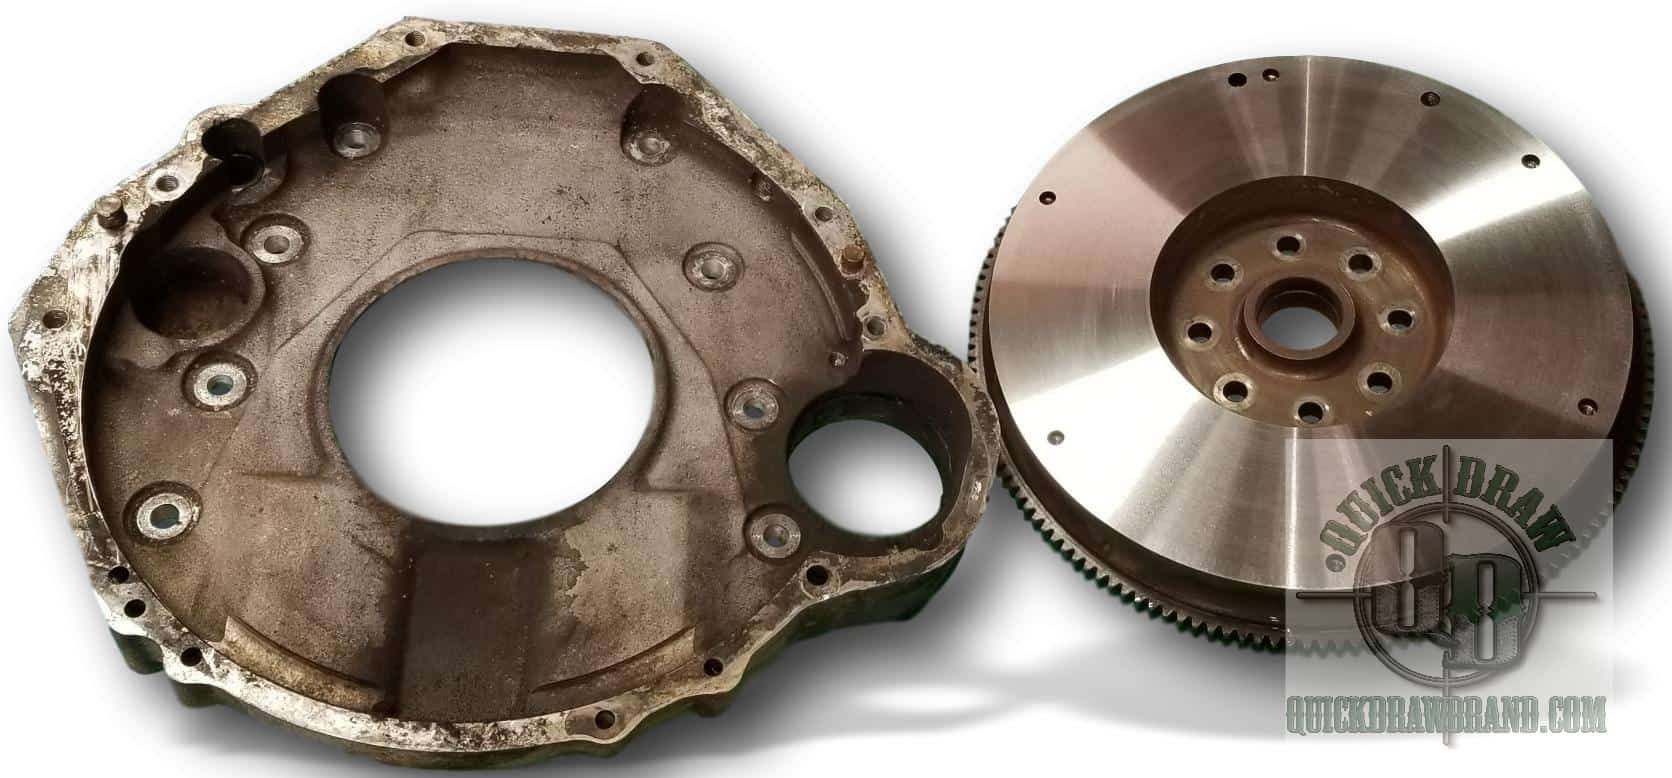 Ford SB Cummins Adapter for your 6BT and 4BT diesel engine